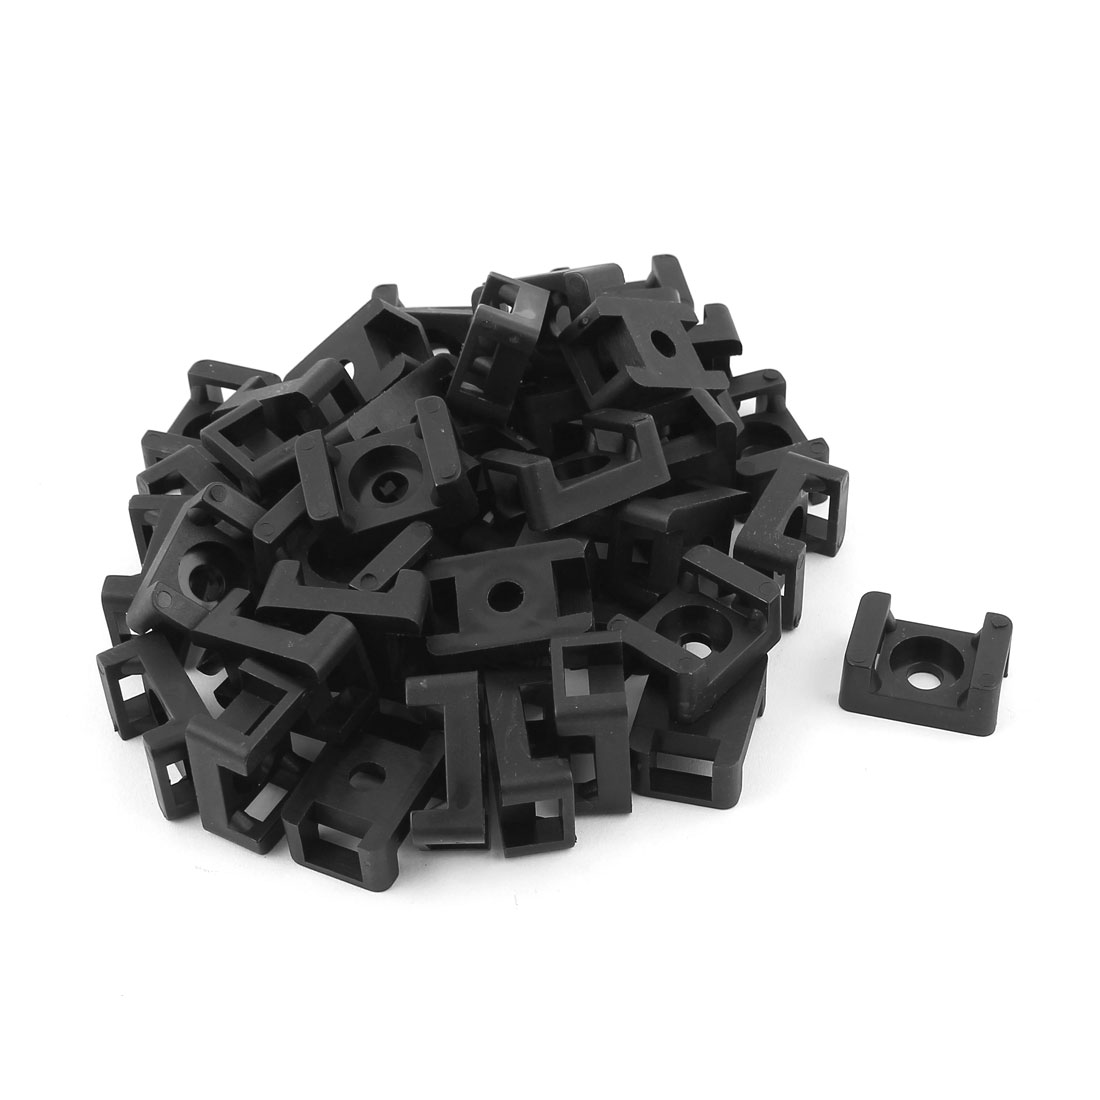 9mm Max Tie Width Cable Screw Mount Saddles Bases Cradle Holder Black 100pcs